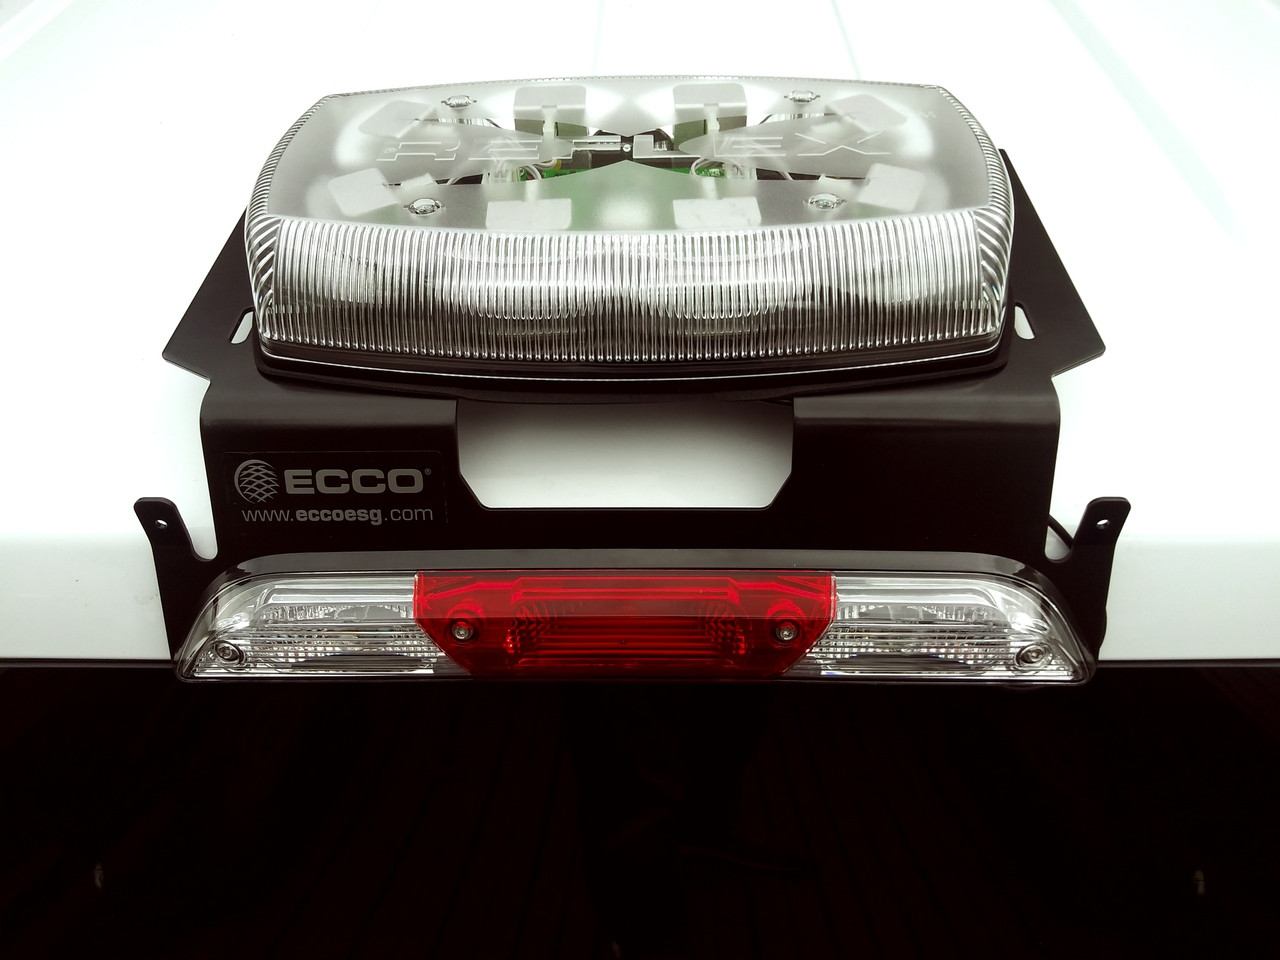 ECCO LED BAR AND EASY MOUNTING BRACKET